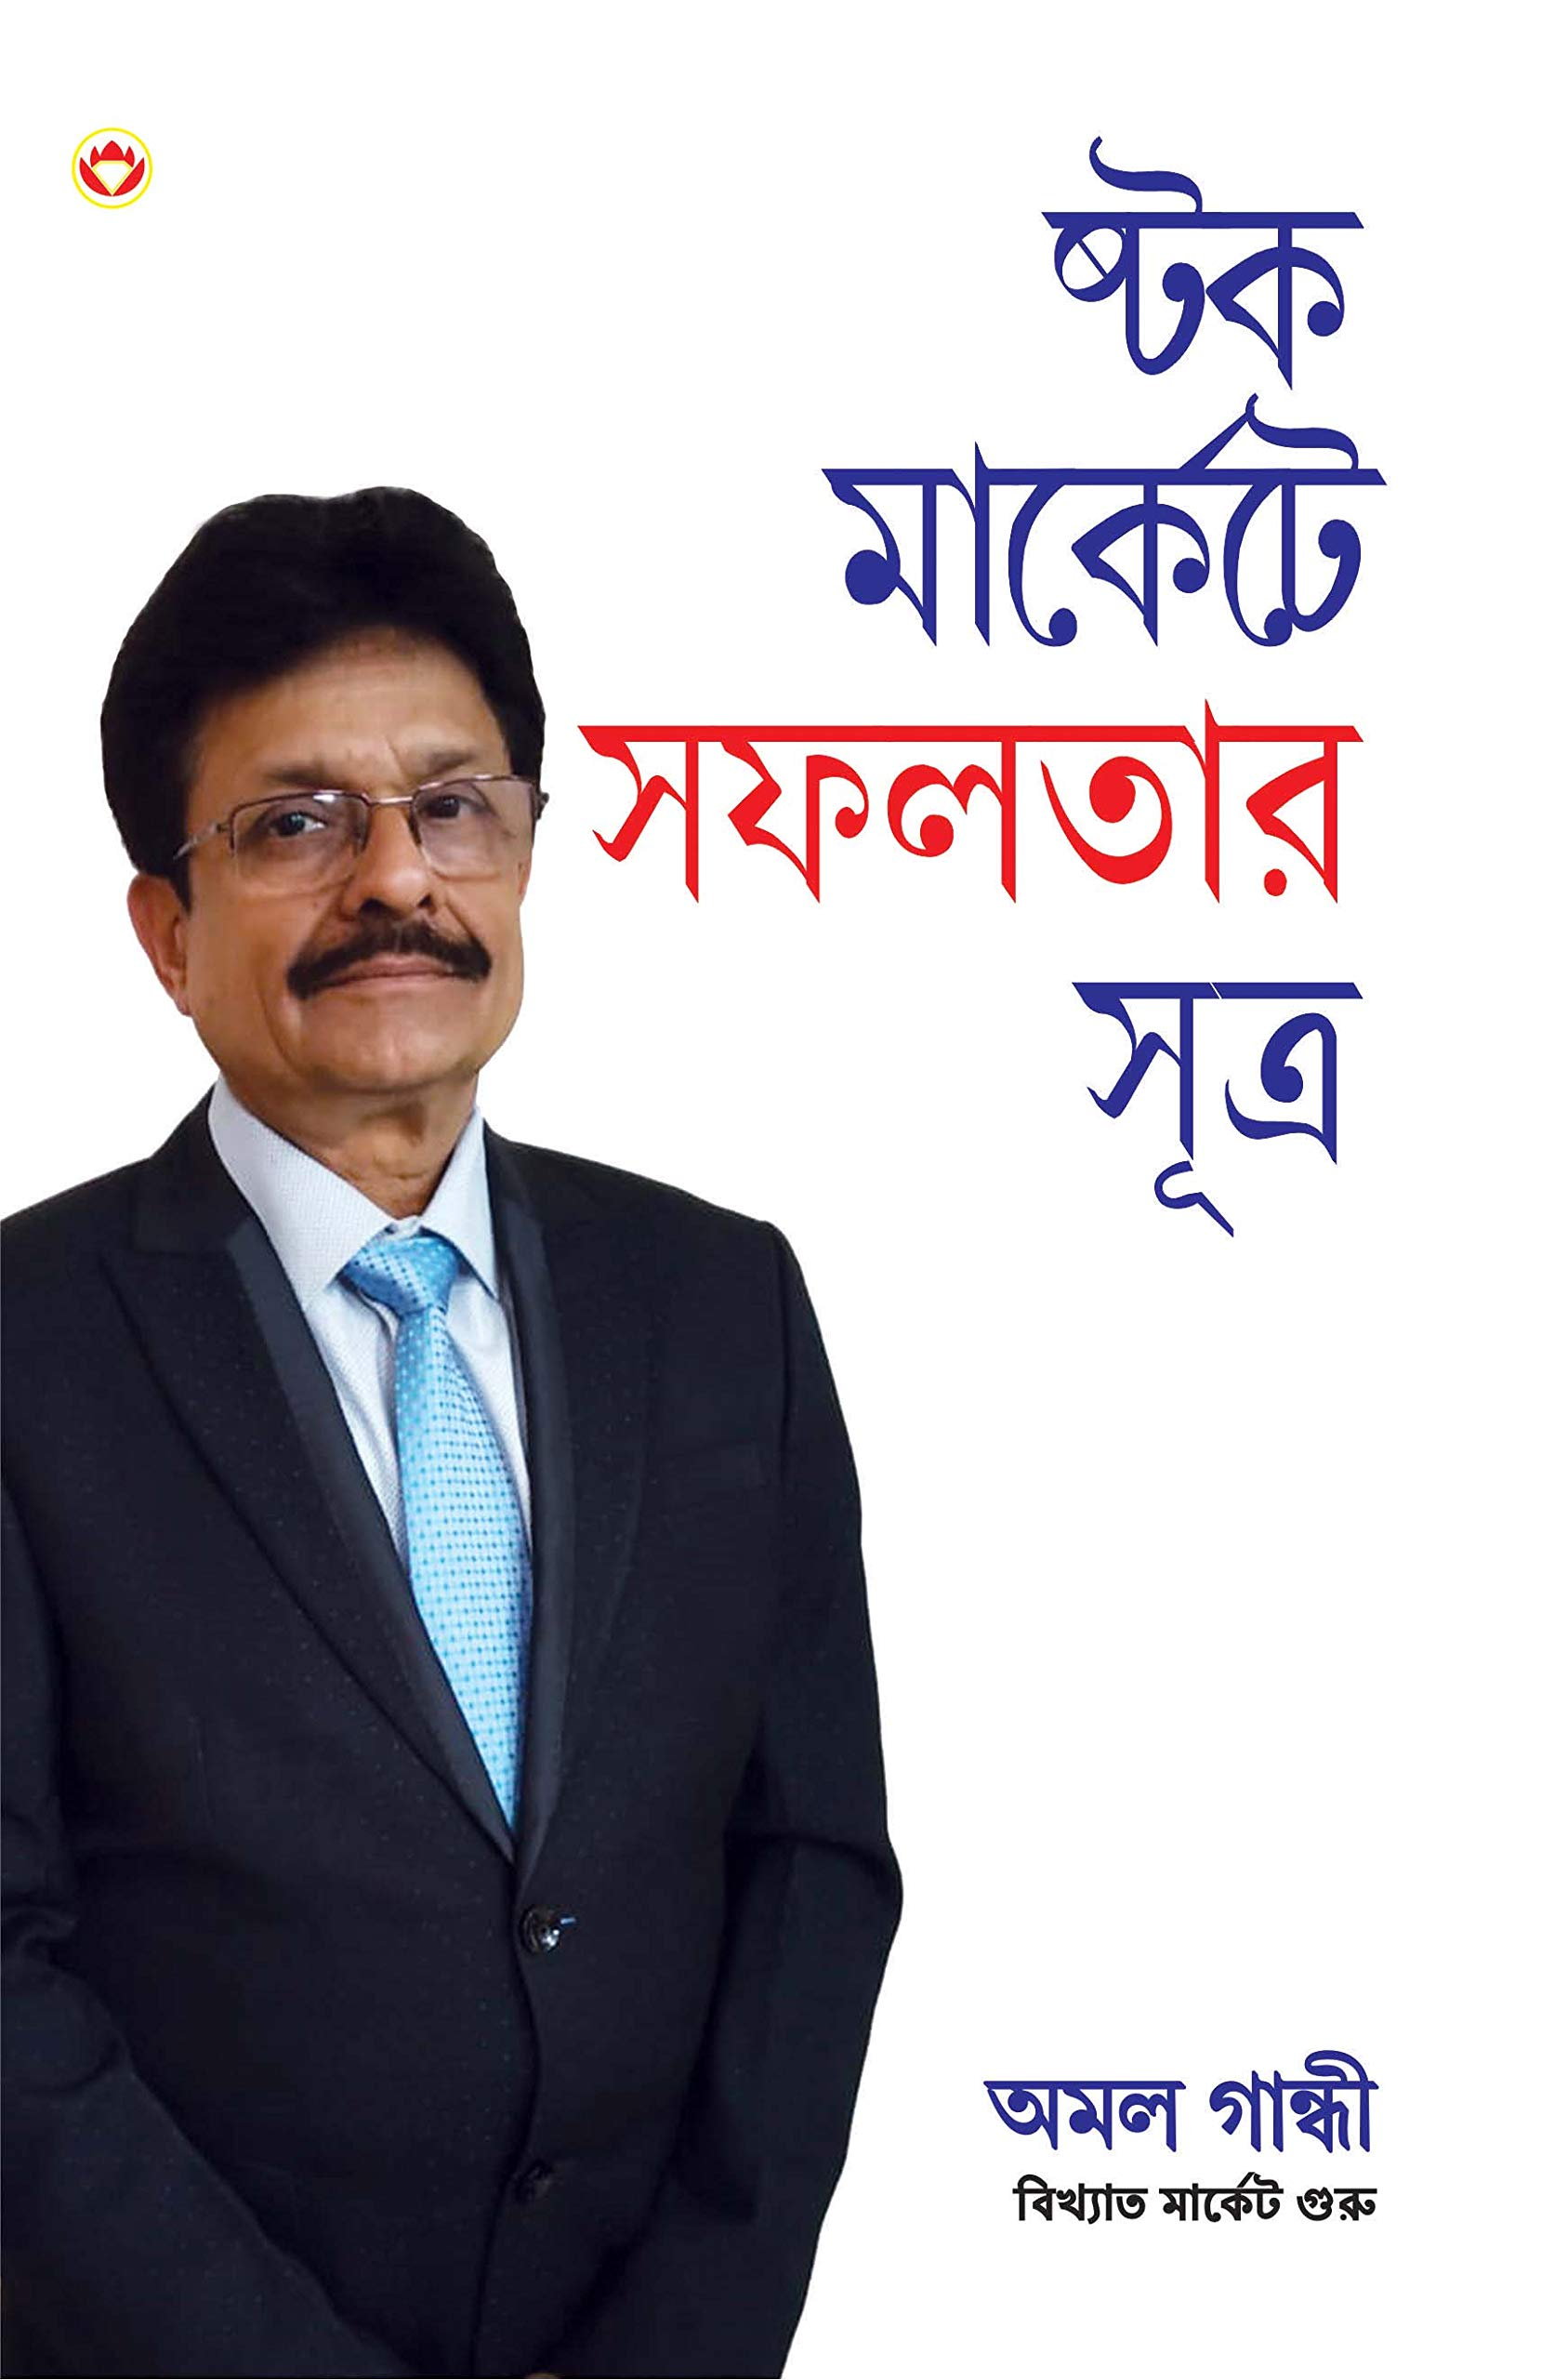 Stock Market Mein Safalta Ke Sutra (Bangla) (How to Get Success in Stock Market with Sutras in Bengali)